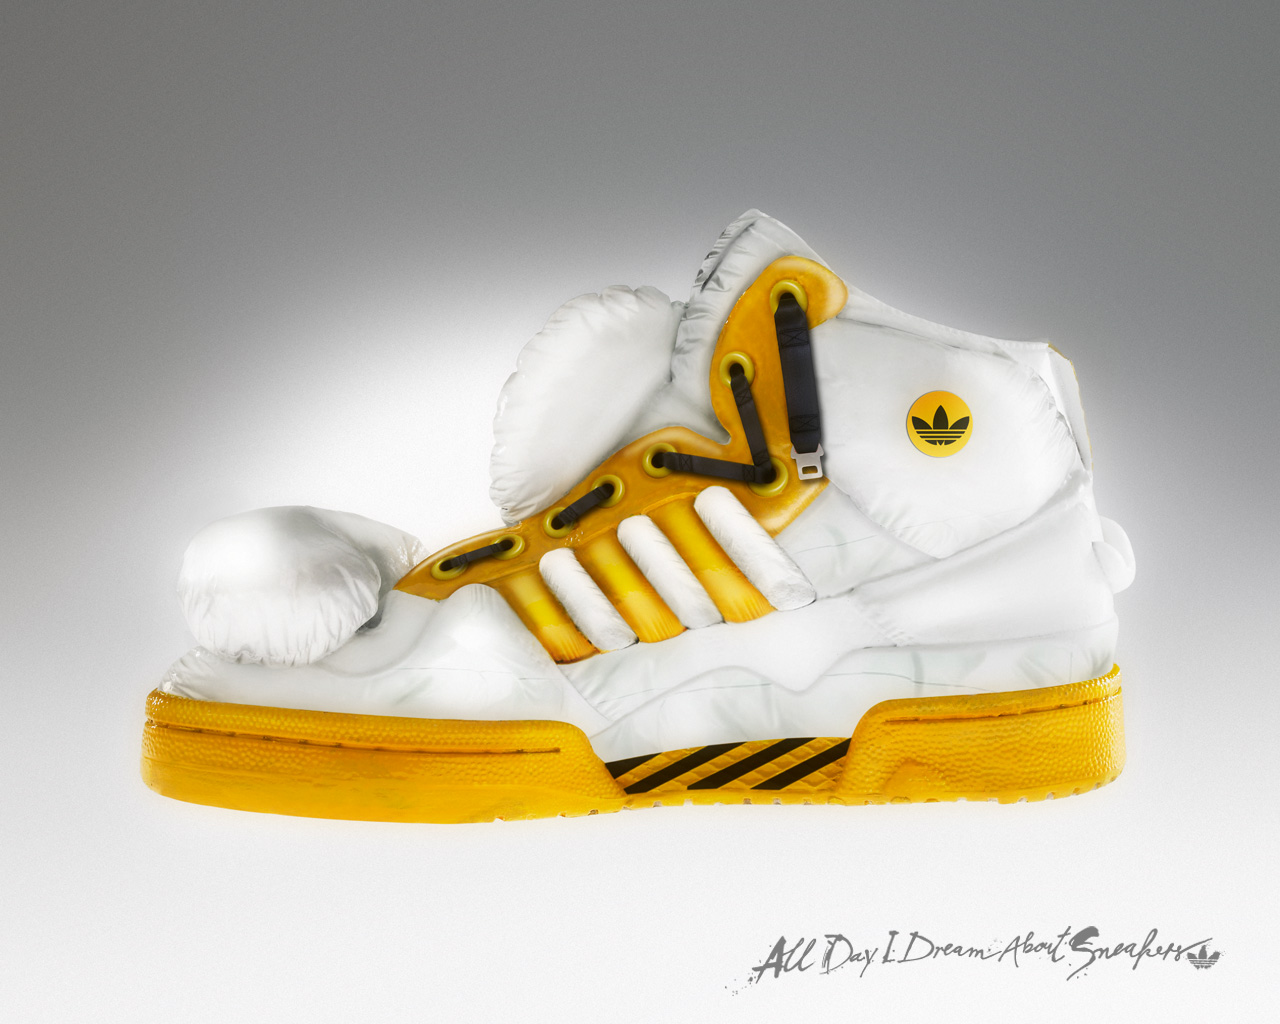 Adidas Outdoor Ad - All Day I Dream About Sneakers, Airbag